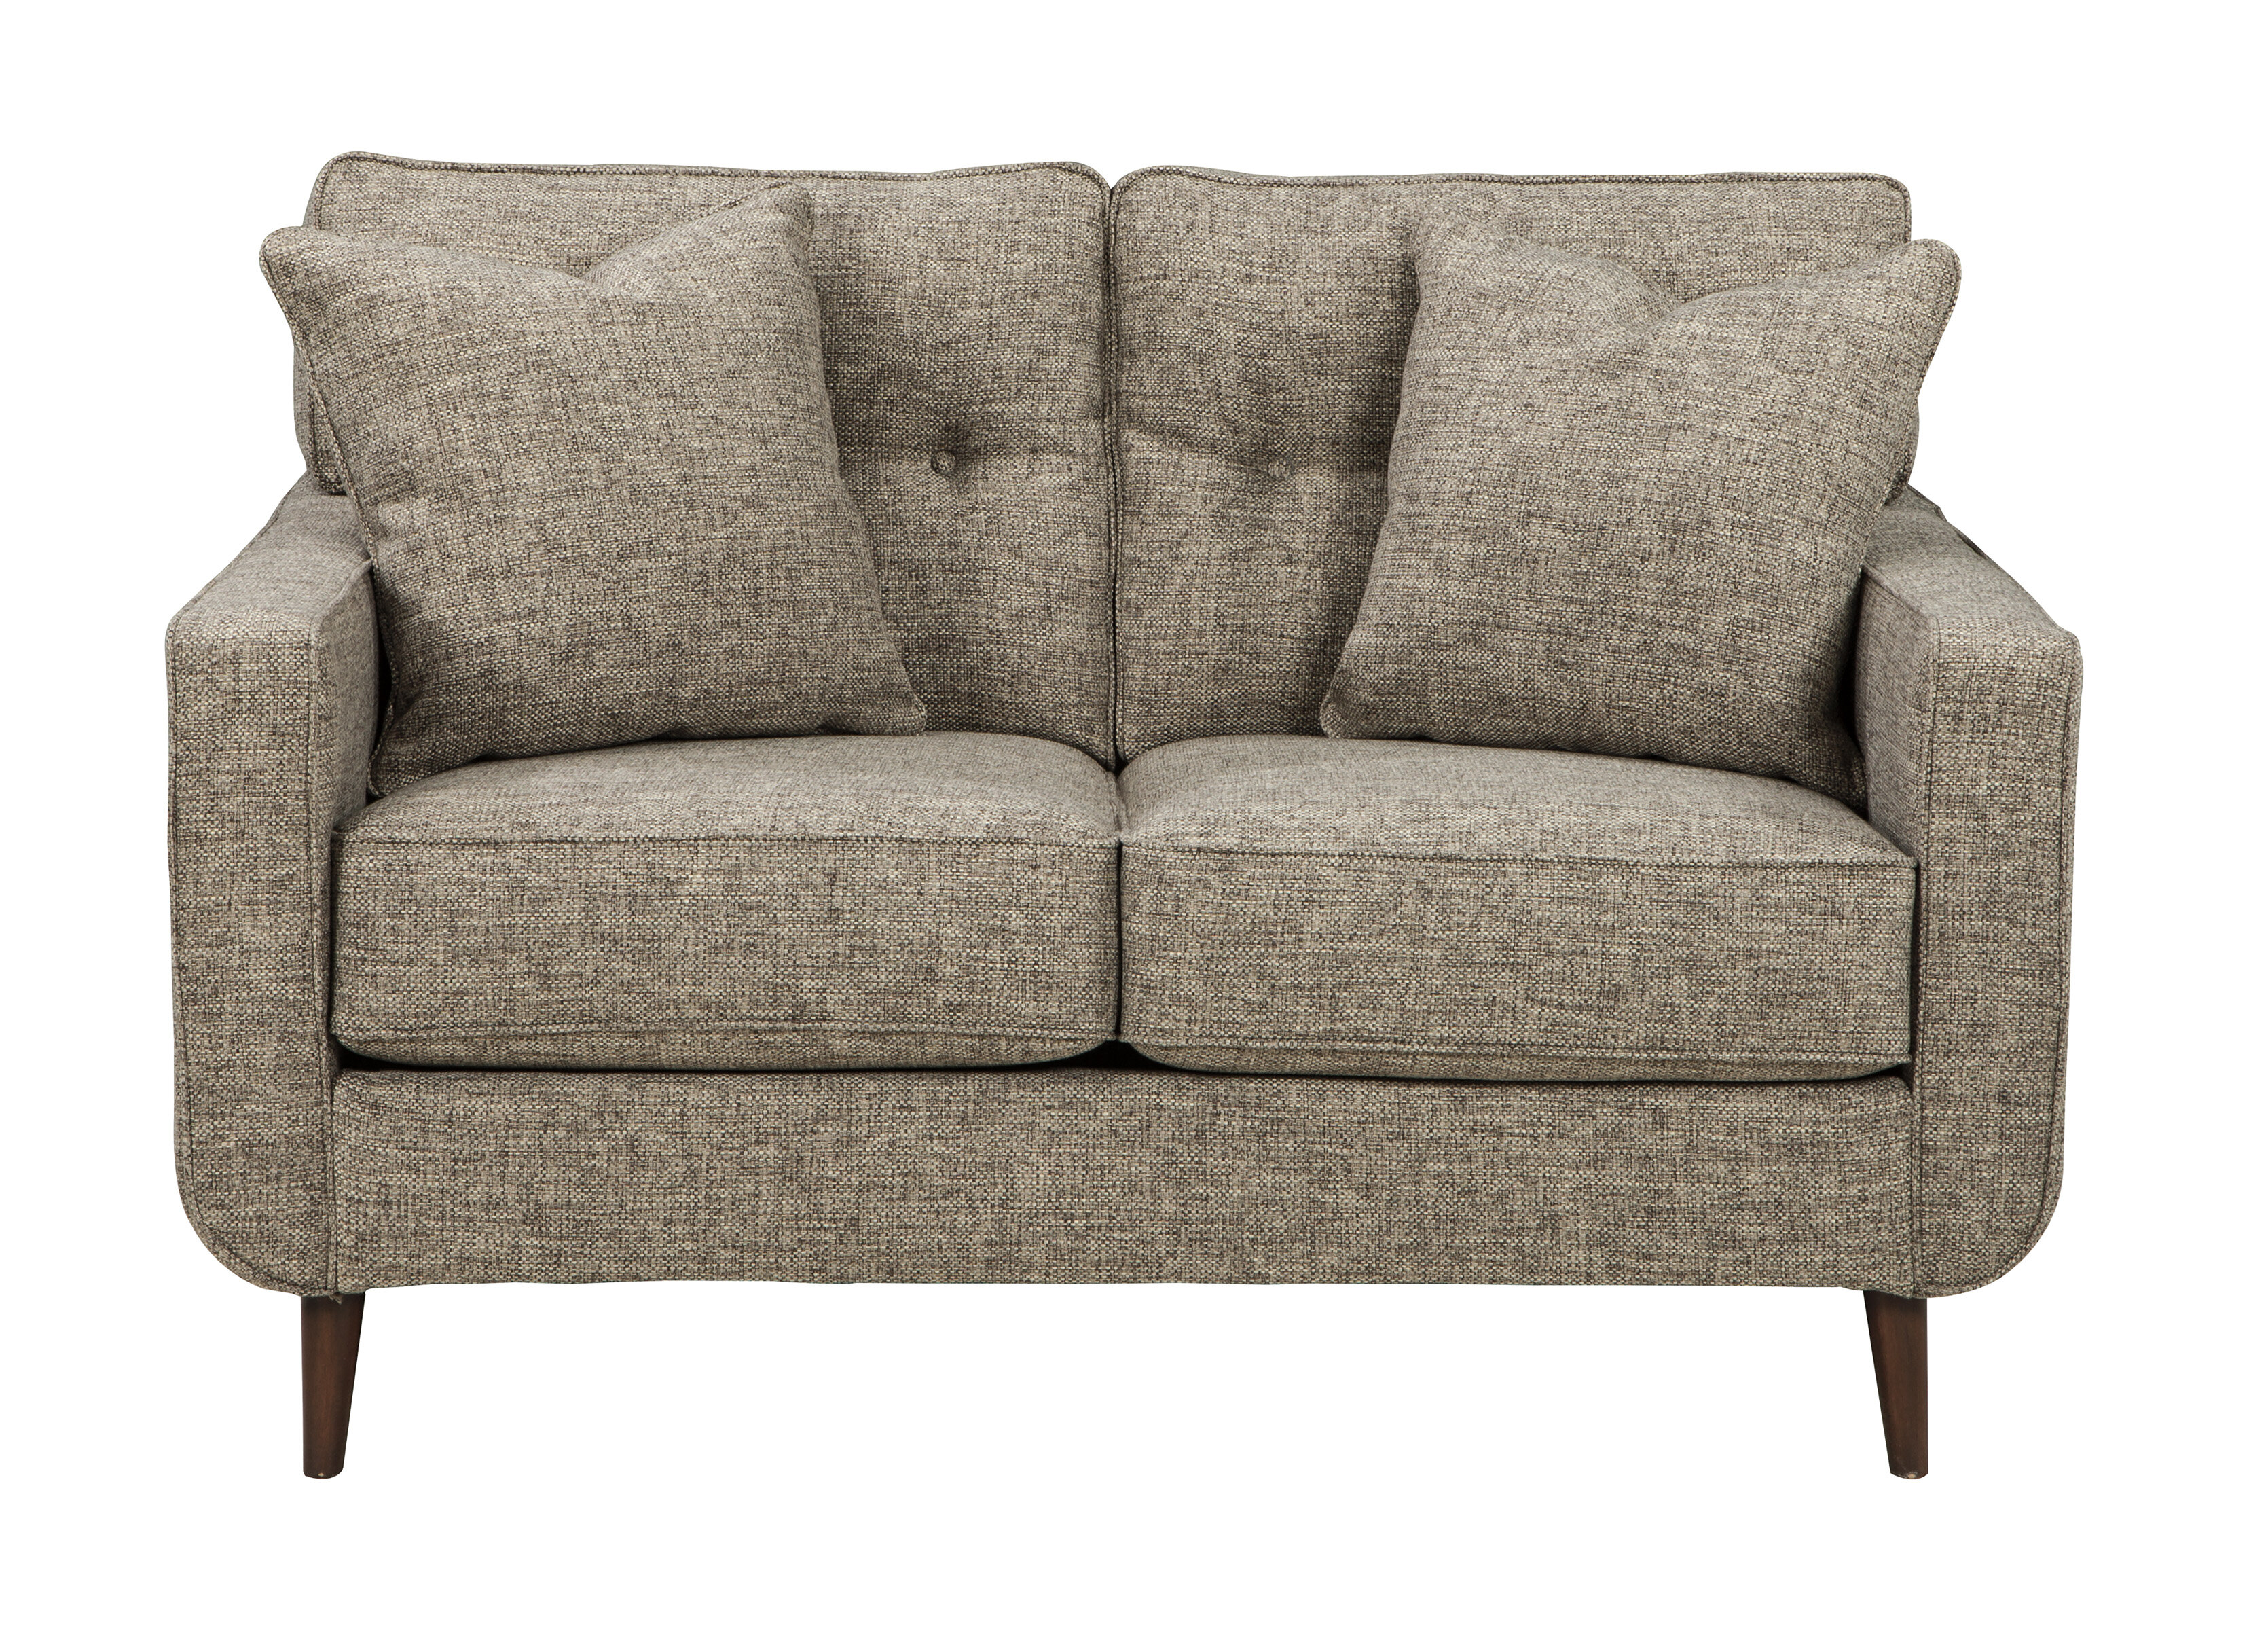 furniture retro brayden reviews loveseat wayfair modular studio pdx higbee